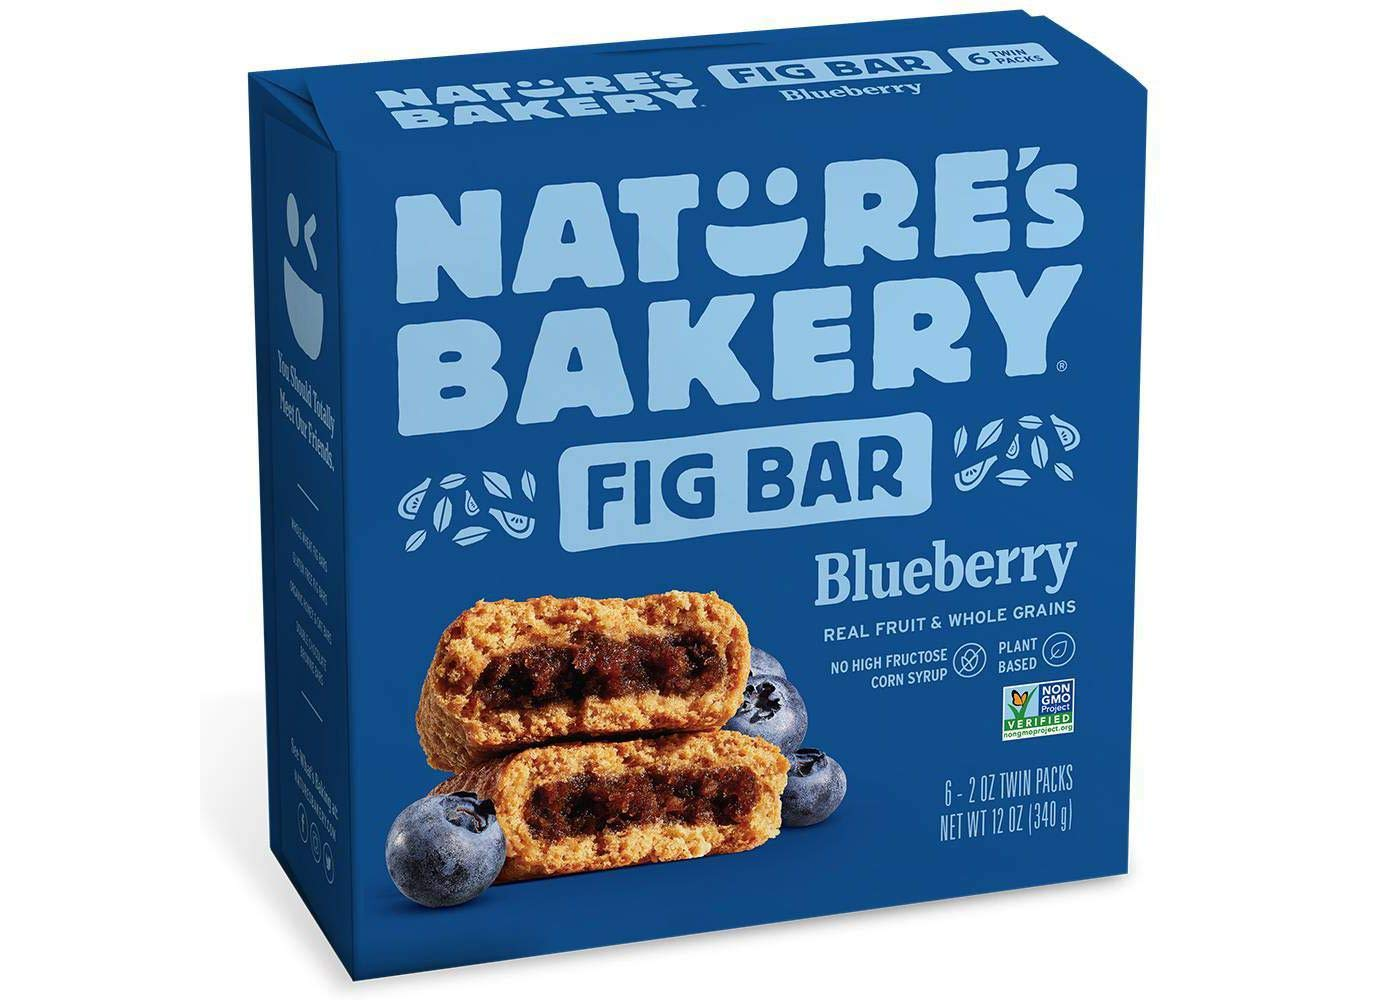 Nature's Bakery Blueberry Real Fruit, Whole Grain Fig Bar - 6 ct. (12 oz.) by Nature's Bakery FB